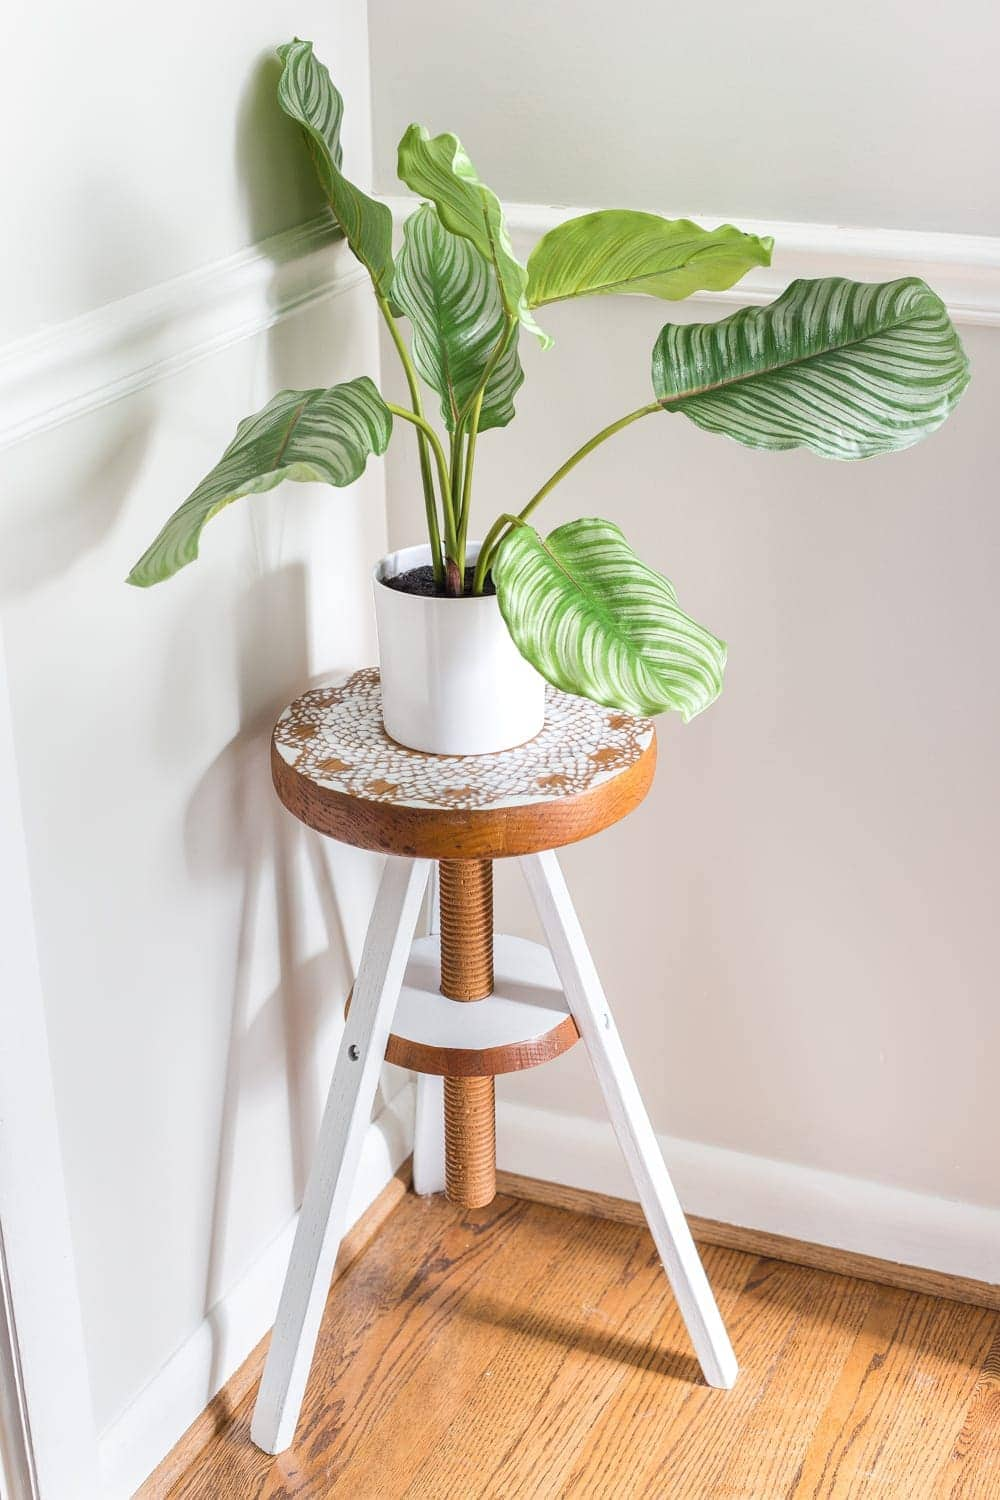 A global designer-inspired DIY plant stand made from a thrifted piano stool using just spray paint and a doily for a quick and easy makeover. #plantstand #pianostool #globaldecor #spraypaint #thriftstoreflips #thrifting #diyhomedecor #thriftedhomedecor